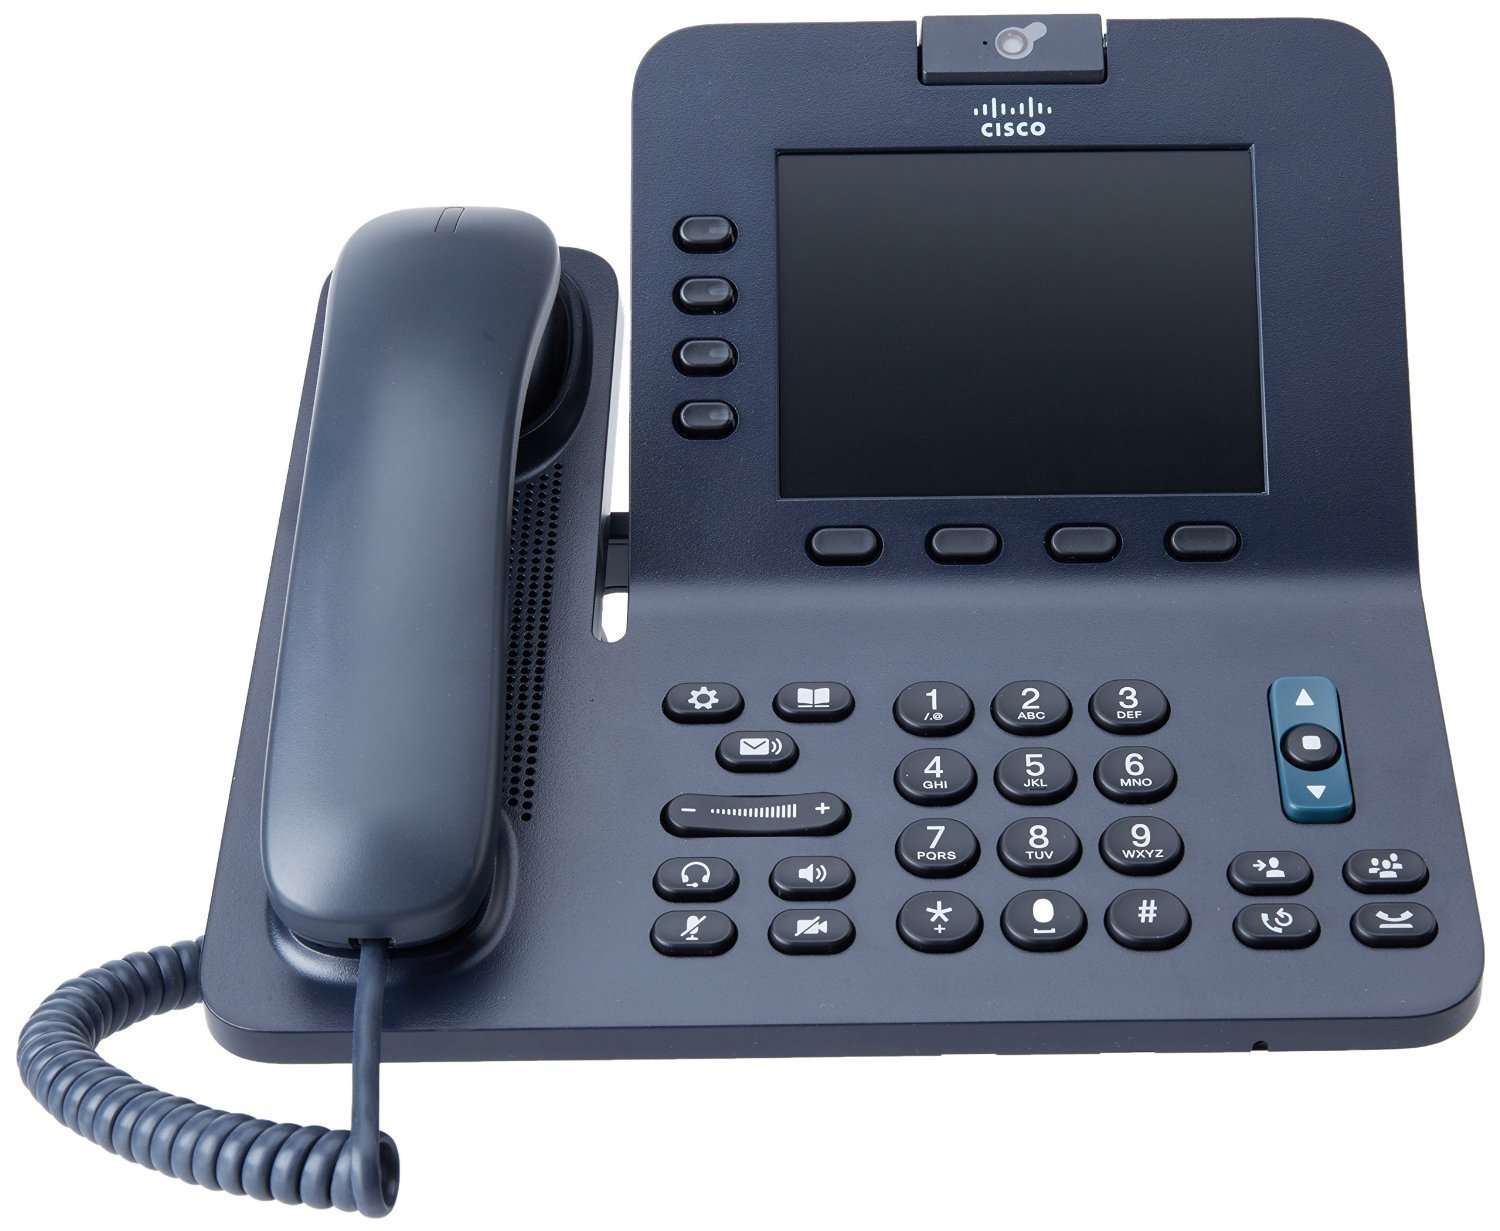 Cisco 8945 4-Line Landline Office VOIP IP Telephone - PoE  (Renewed) (Power Supply Not Included) by Cisco